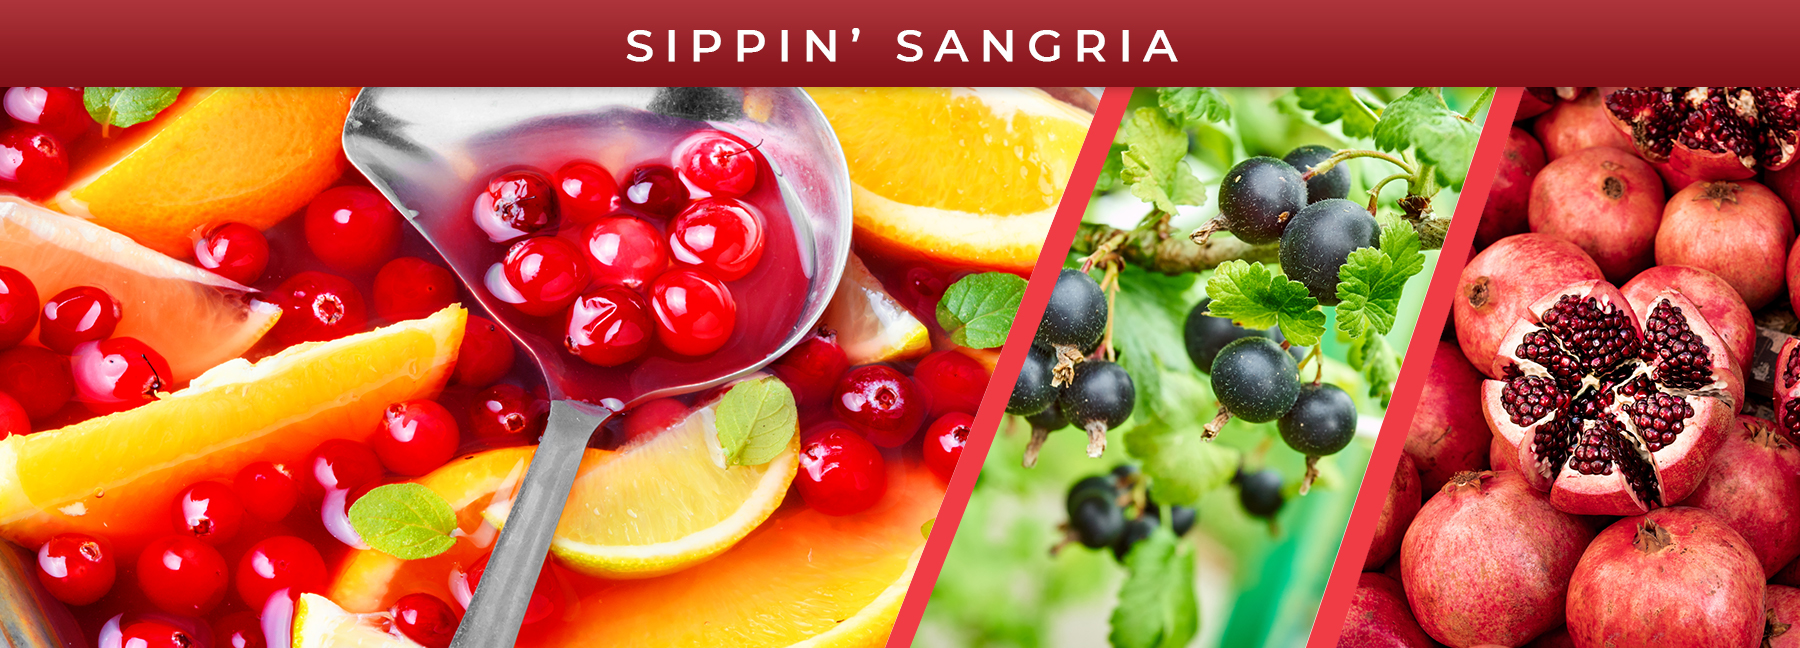 Sippin' Sangria fragrance elements